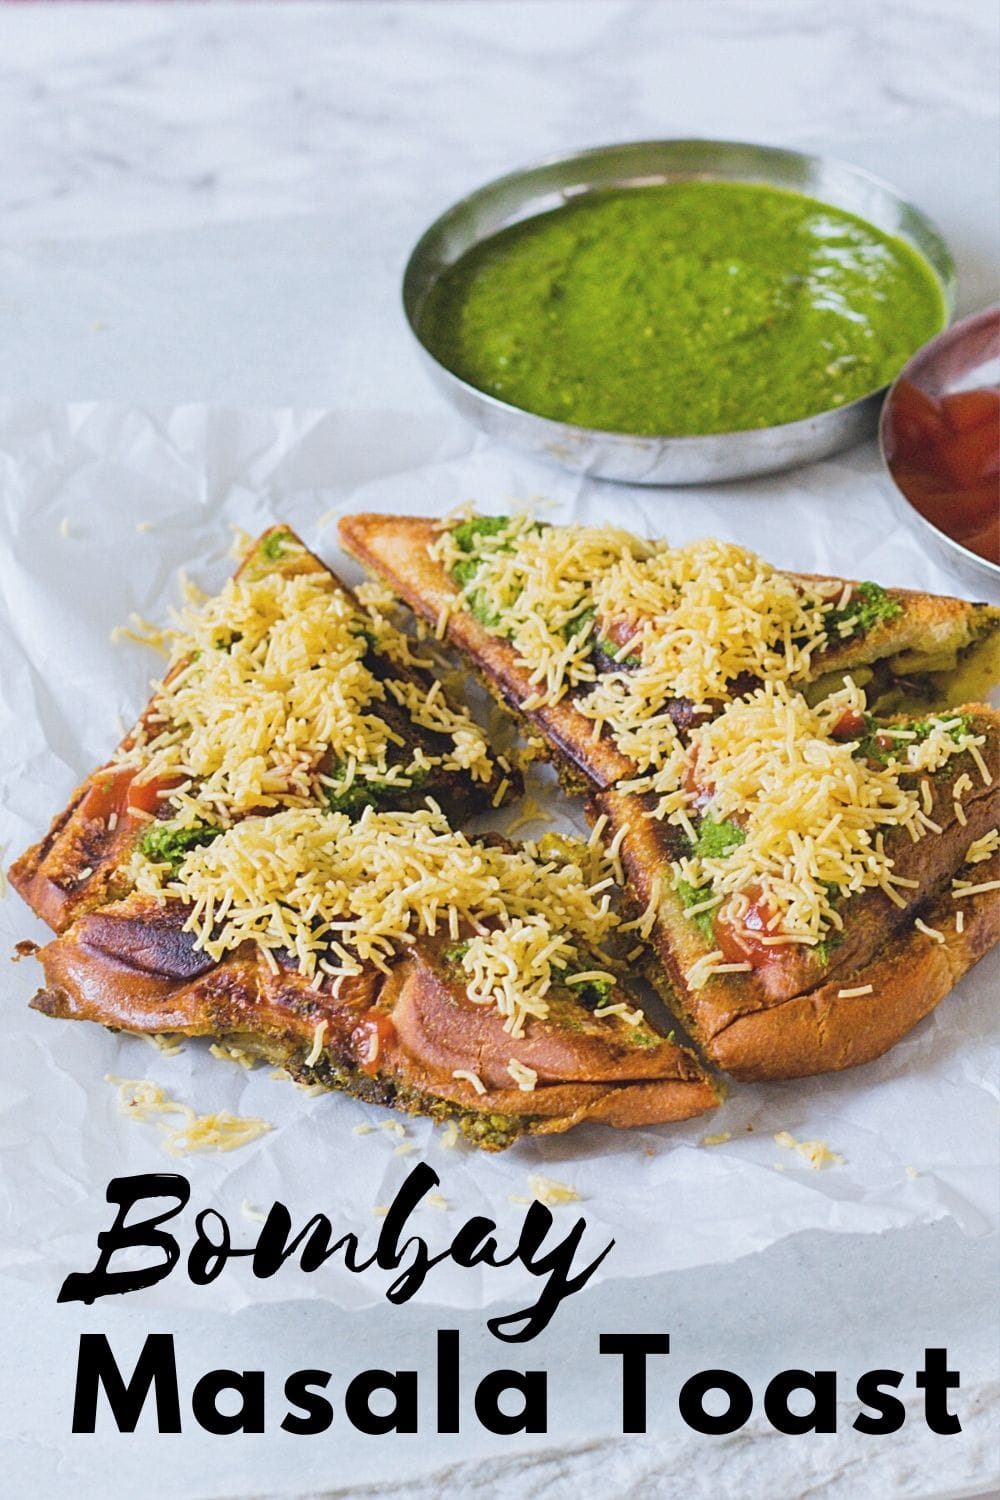 Masala toast sandwich with chutney and ketchup with text on the image for pinterest.